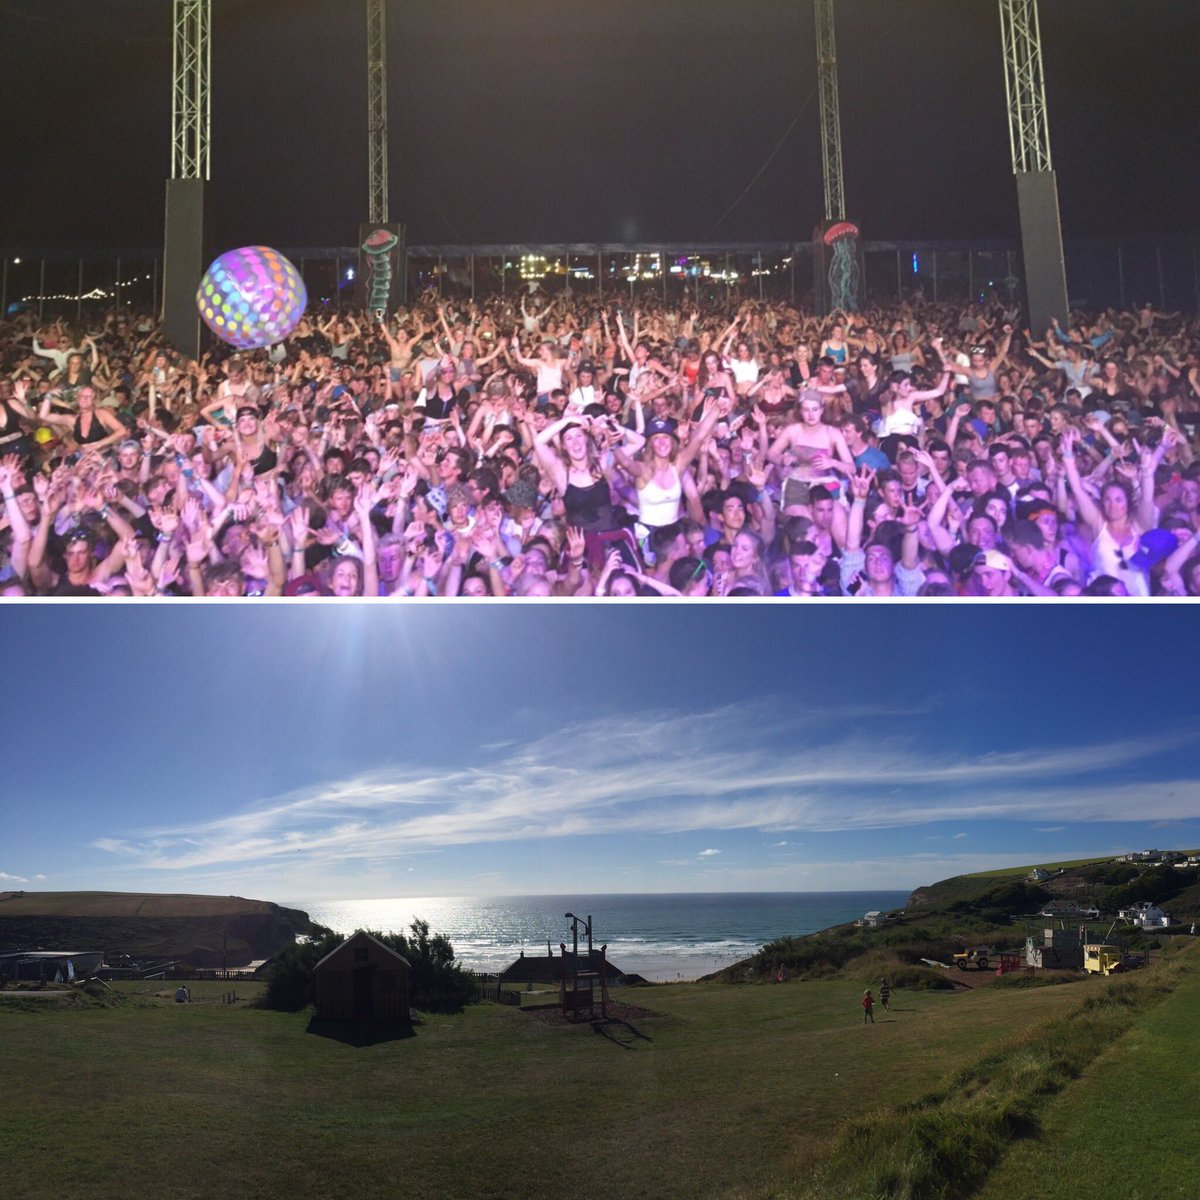 Hold tight @boardmasters @example  show was